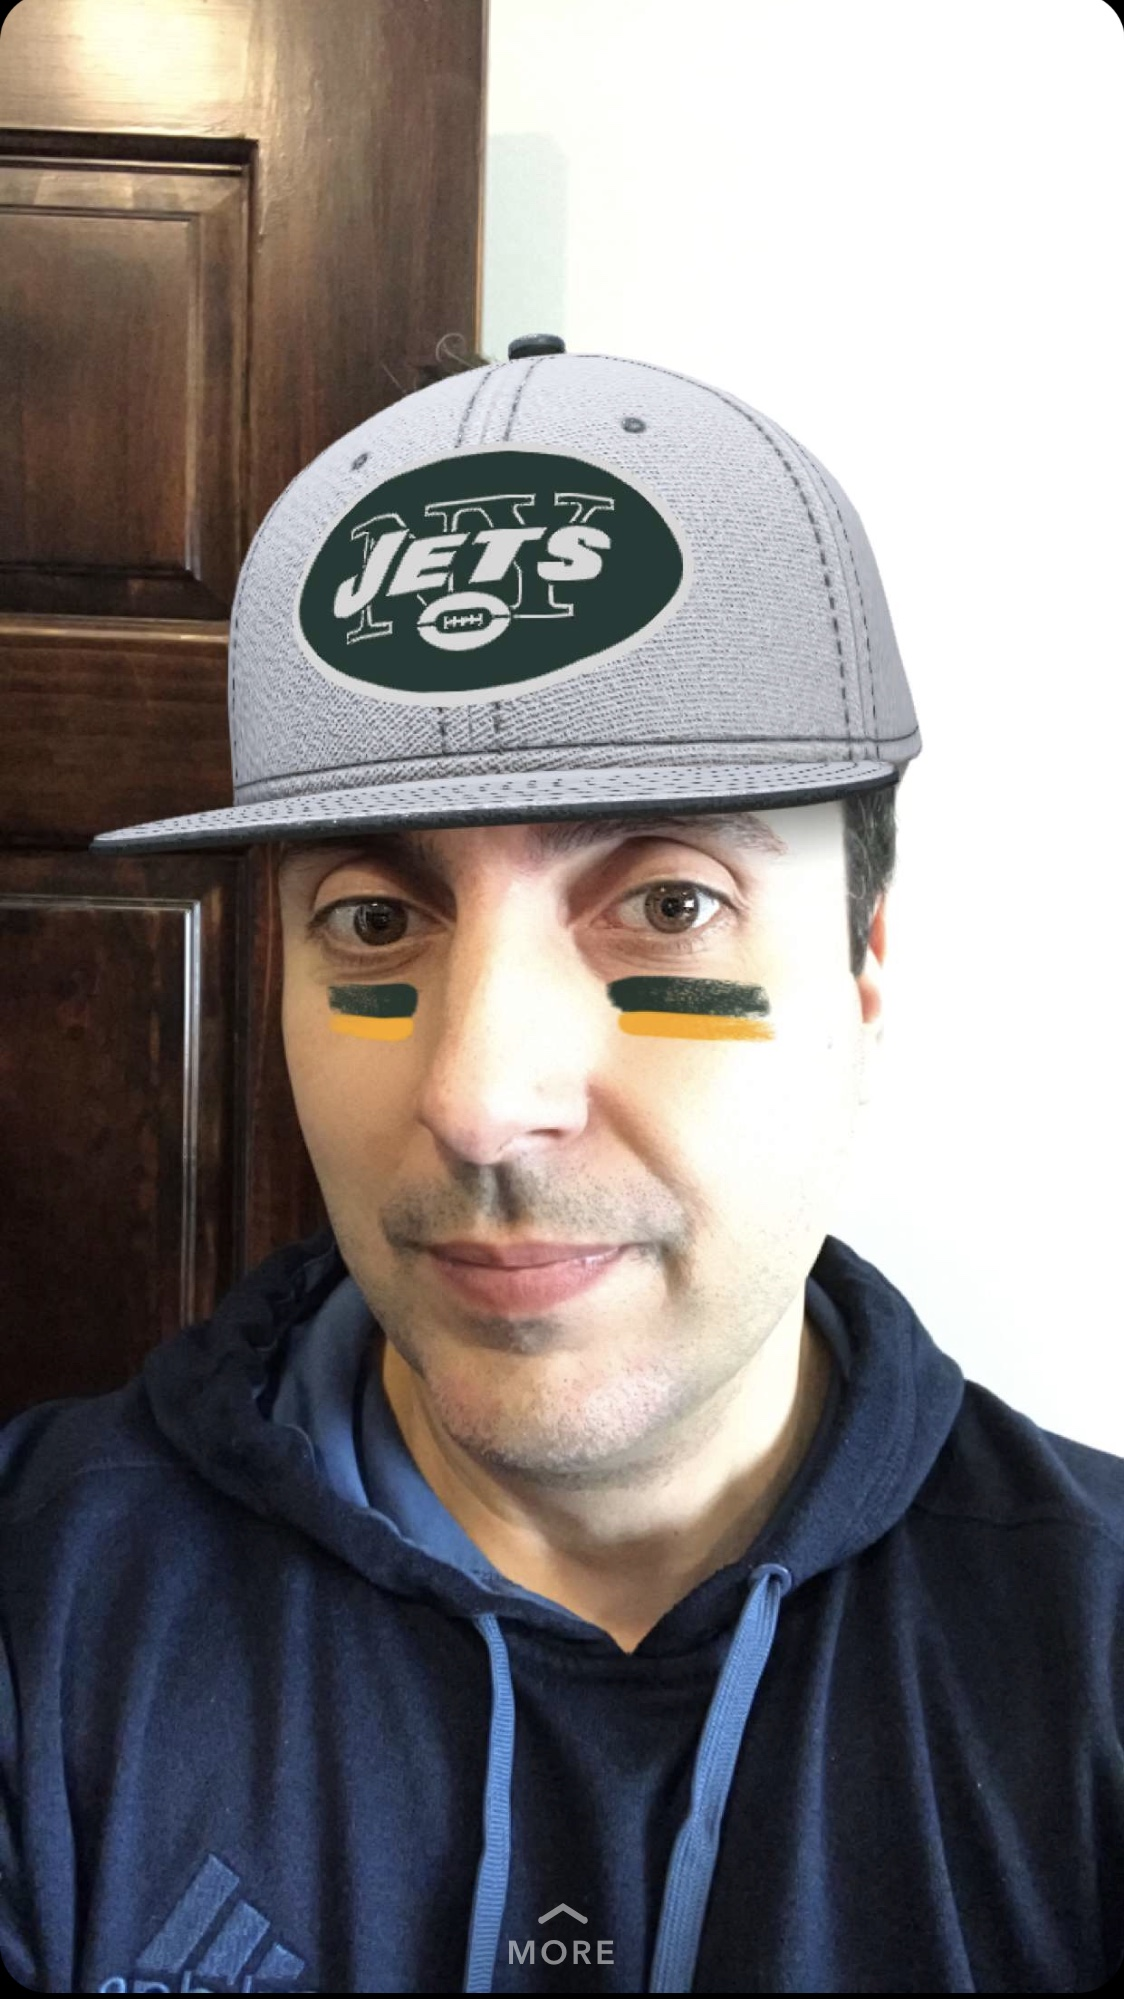 Our Friend Michael Tatsis -  @mikilikit  - was the first to try our  NY Jets Cap Lens